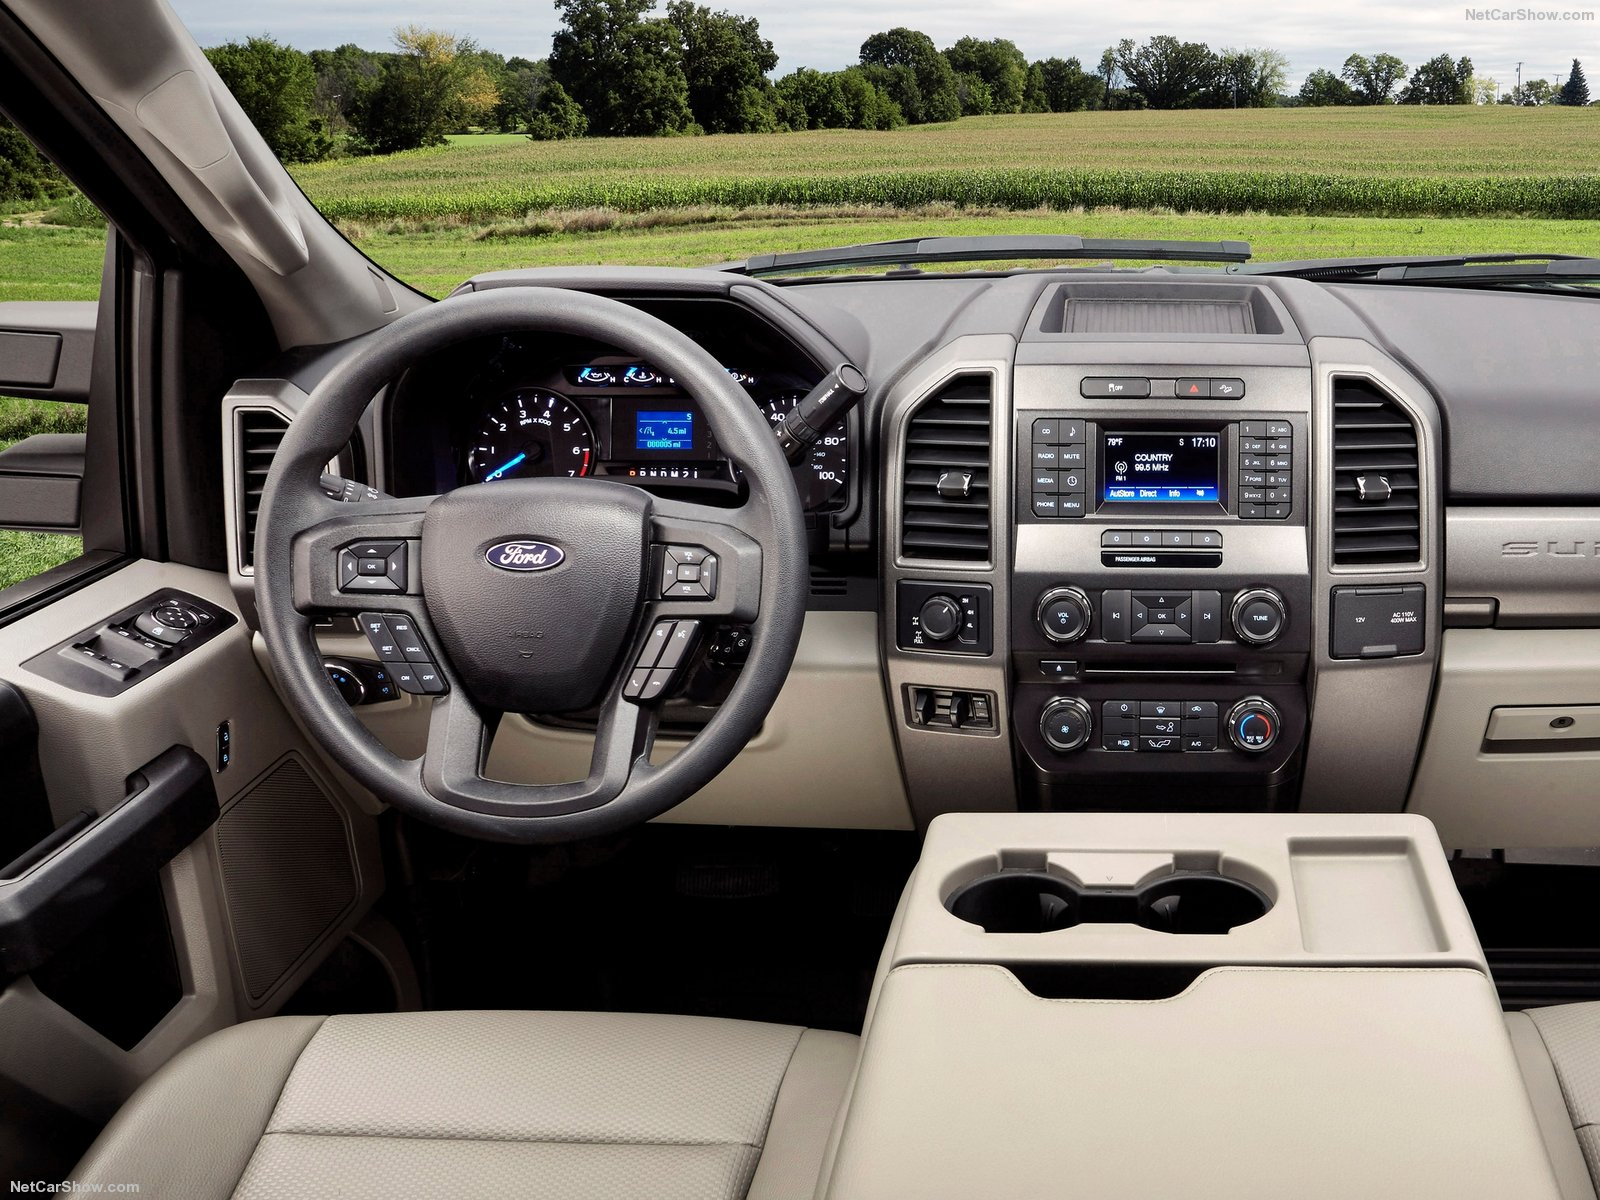 Ford Interior Design To Enter New Phase Says The Man In Charge